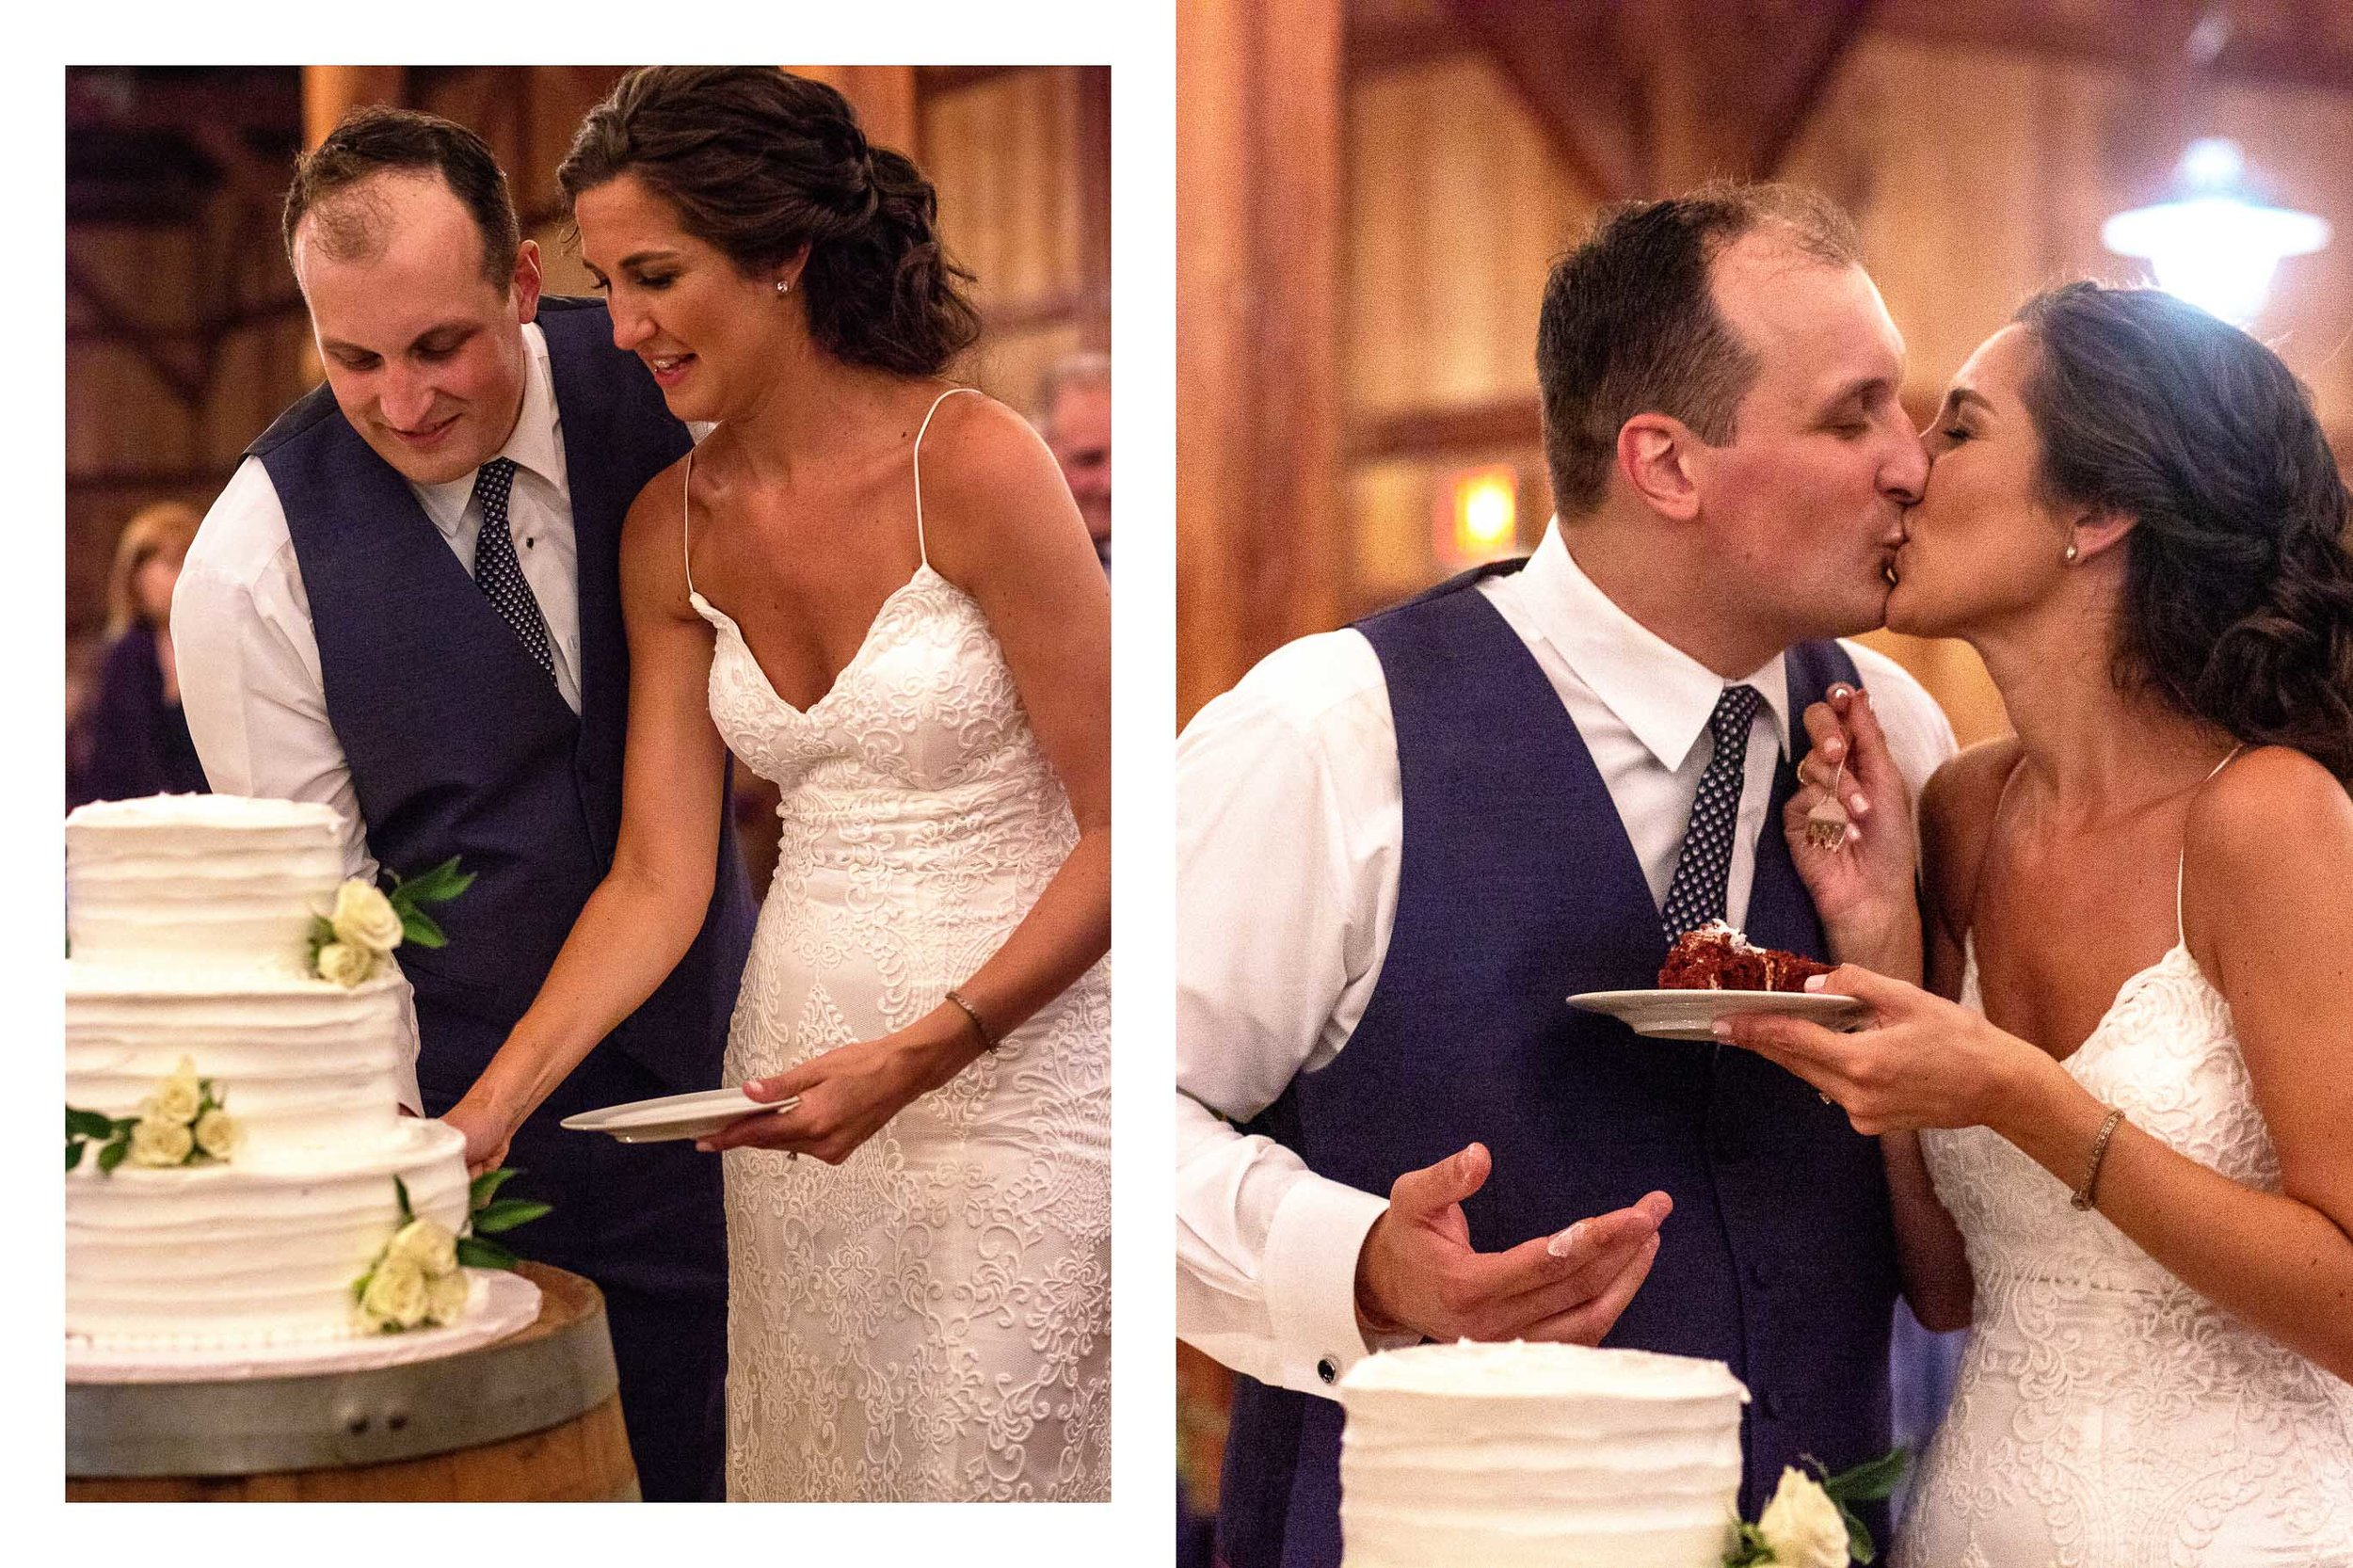 NONESUCH_NYC_WEDDING_Old Bethpage_0129_1.jpg